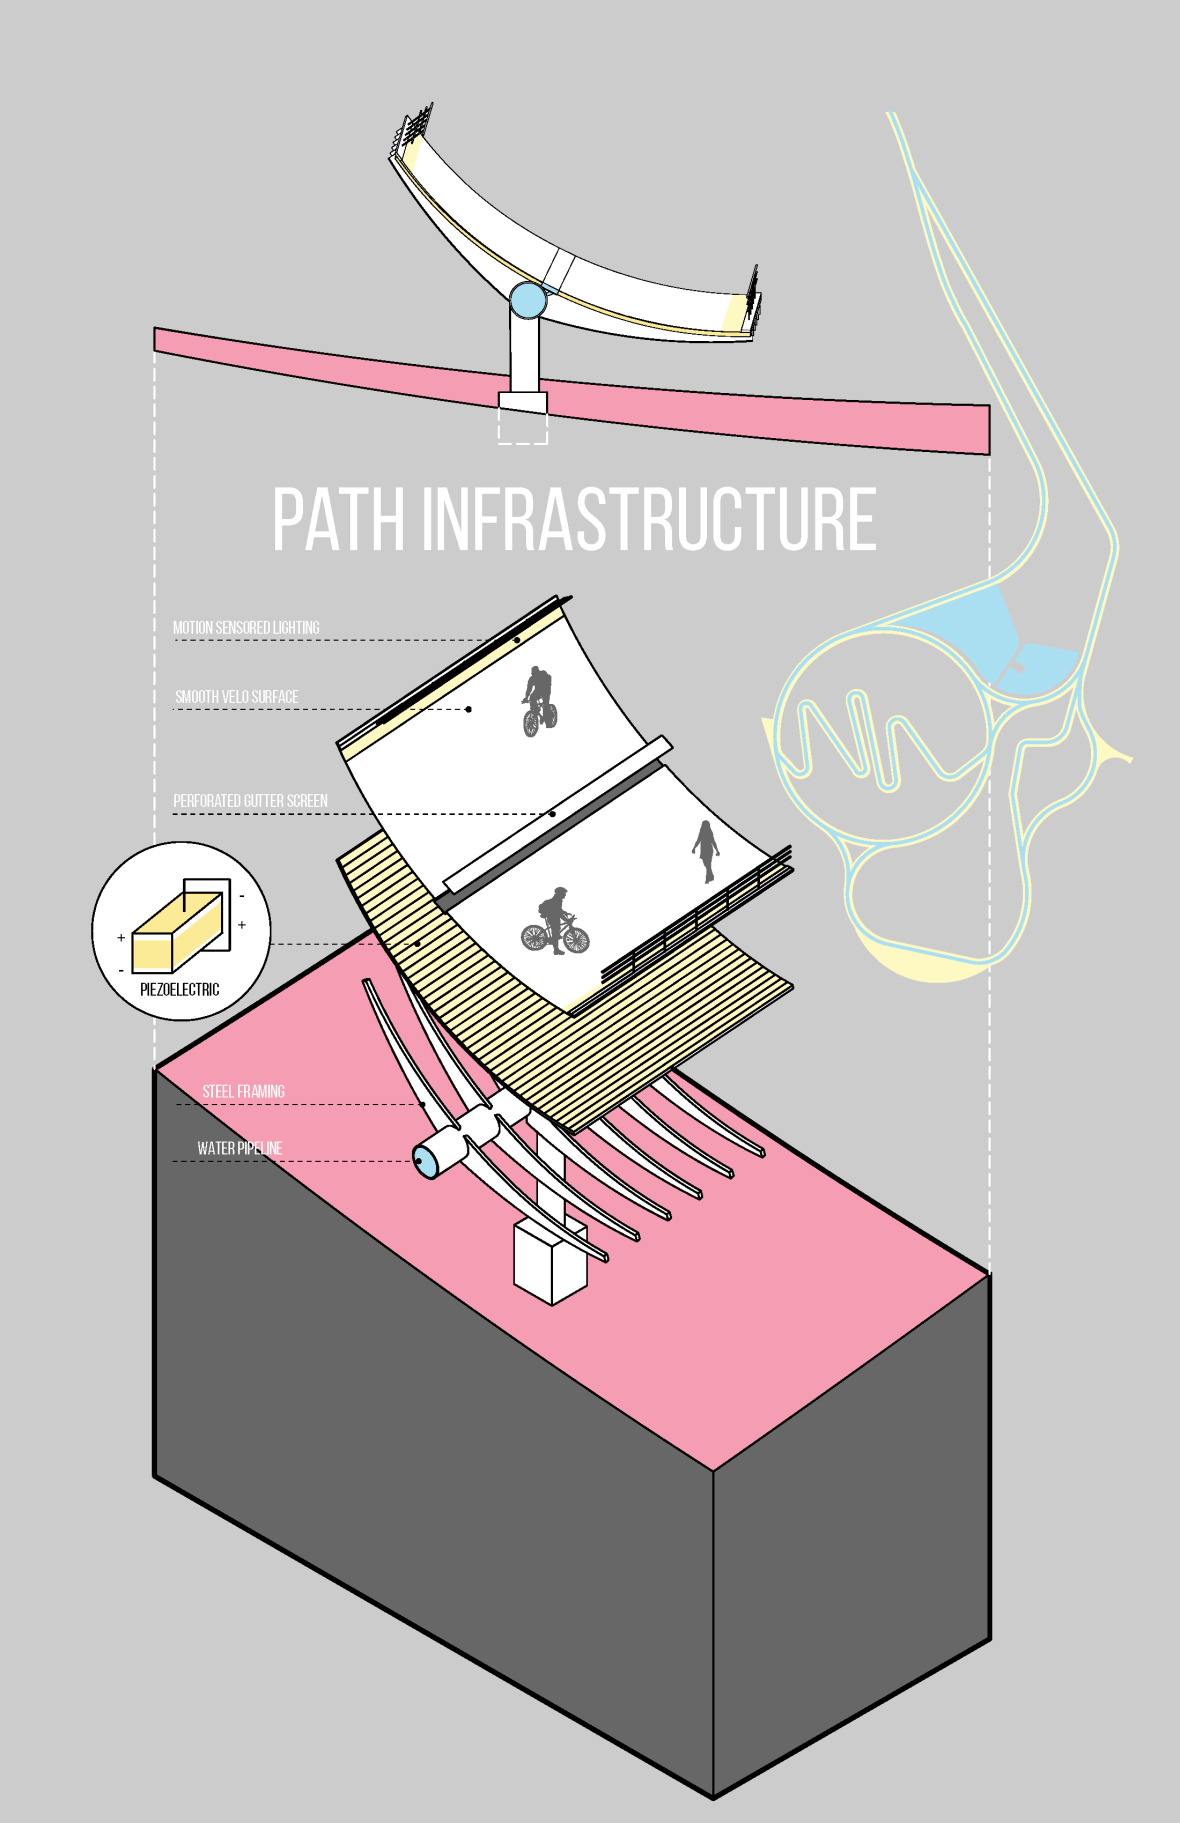 Path Infrastructure